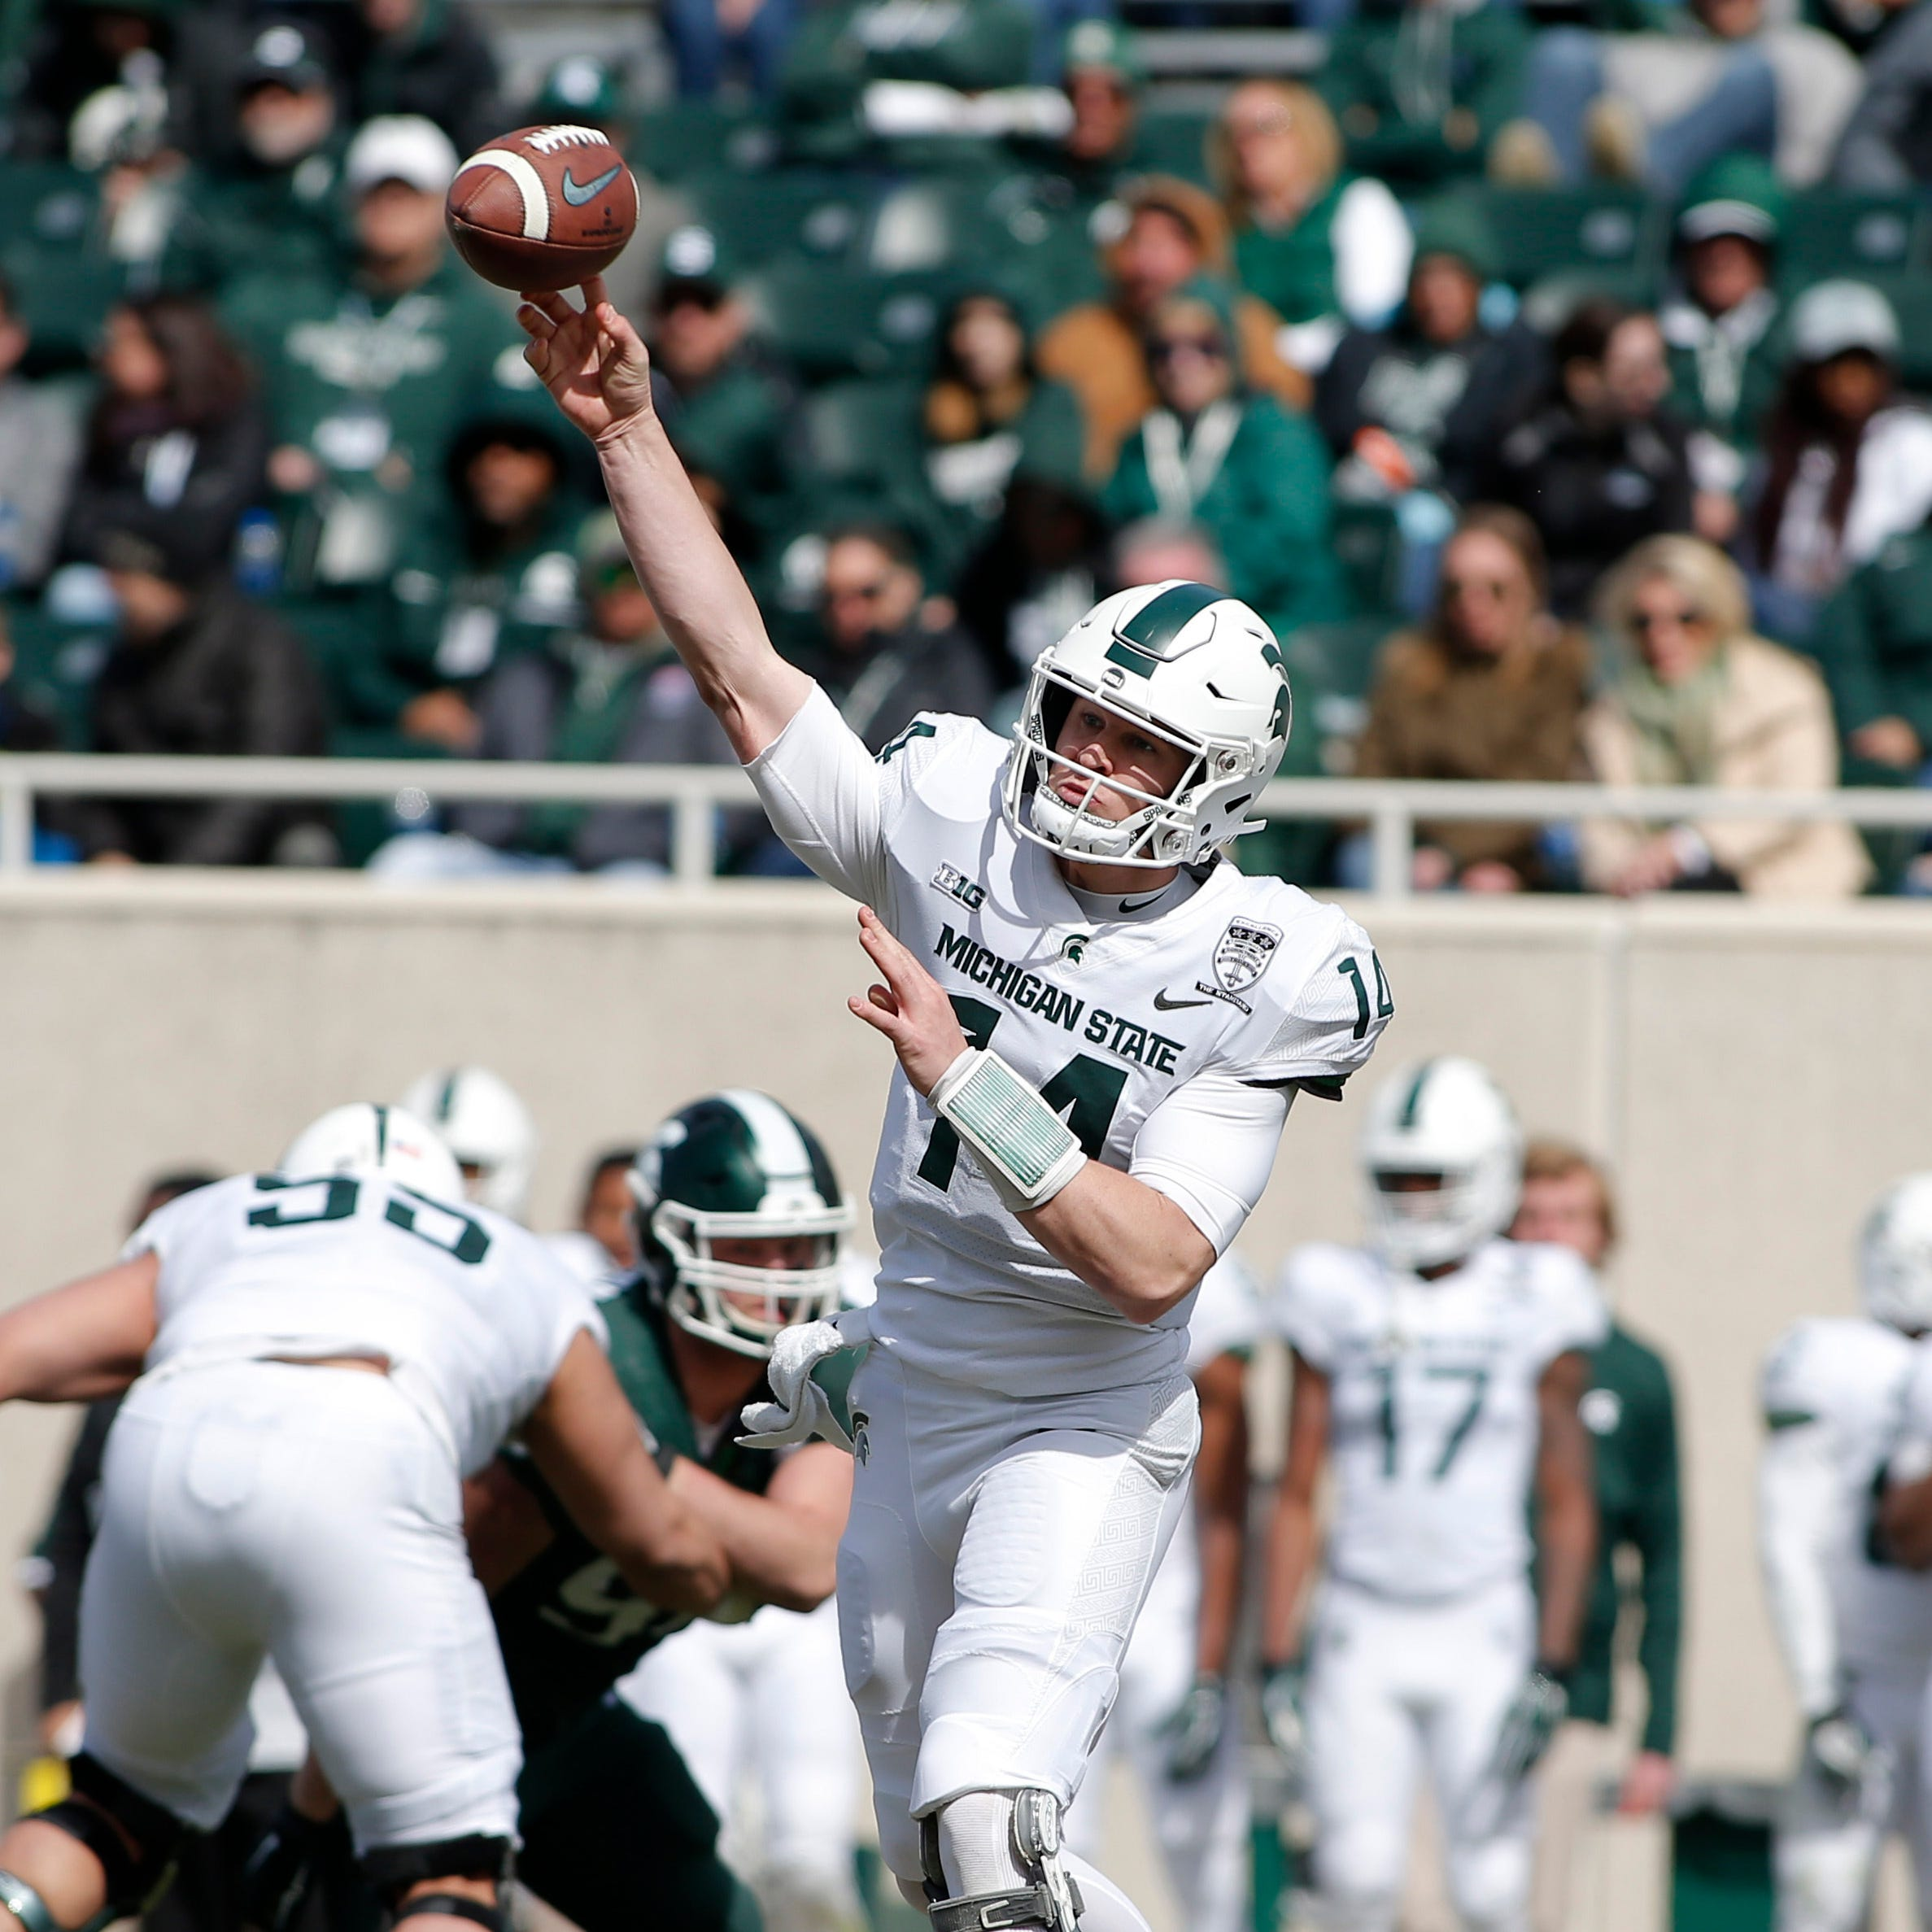 MSU football spring game: Brian Lewerke looks healthy, defense sharp